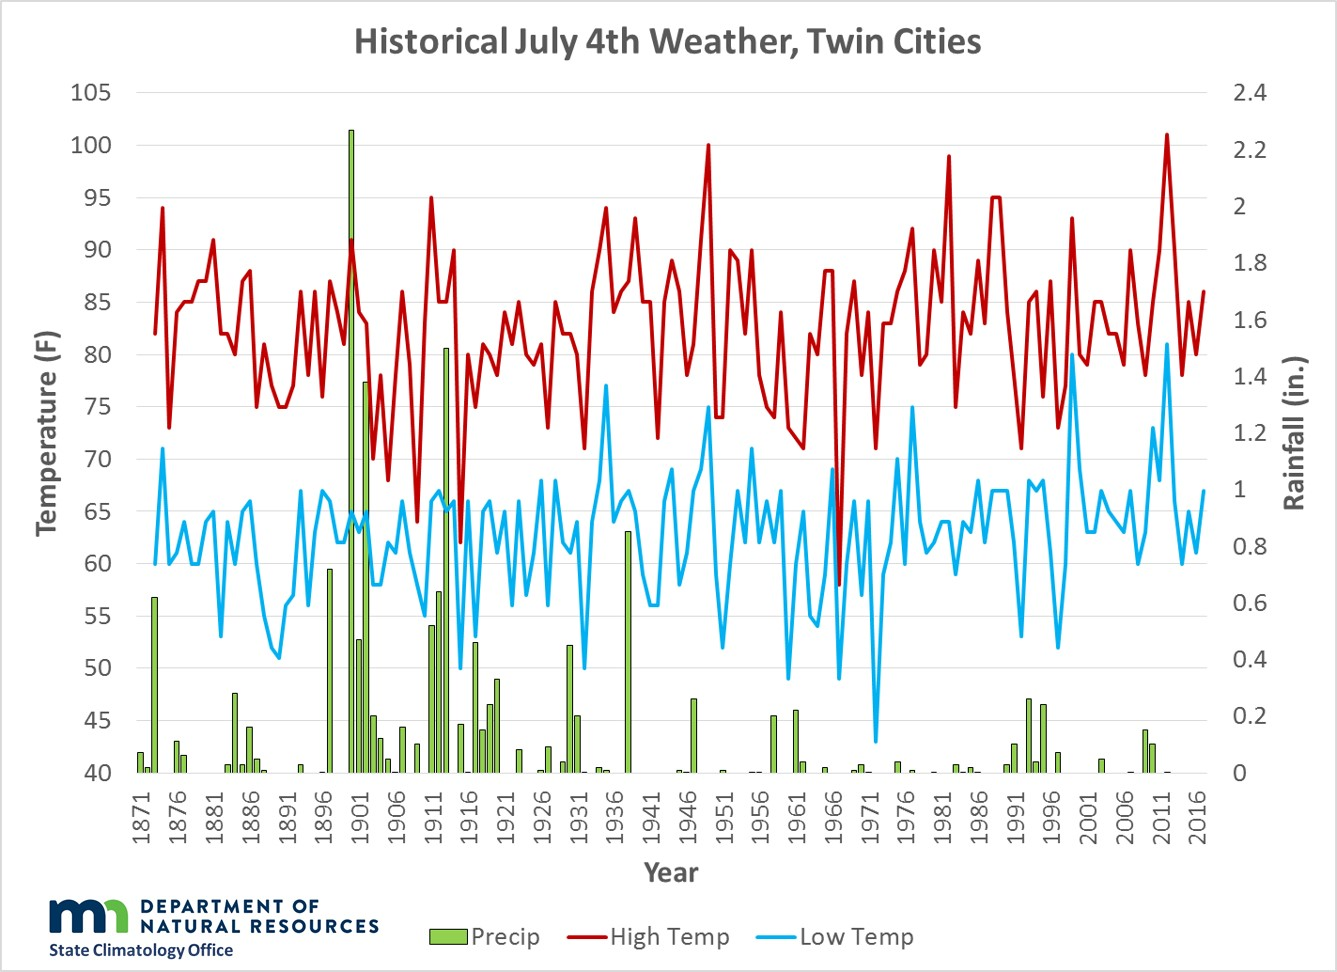 July 4th High/Low Temperatures (F) and Precipitation (in)